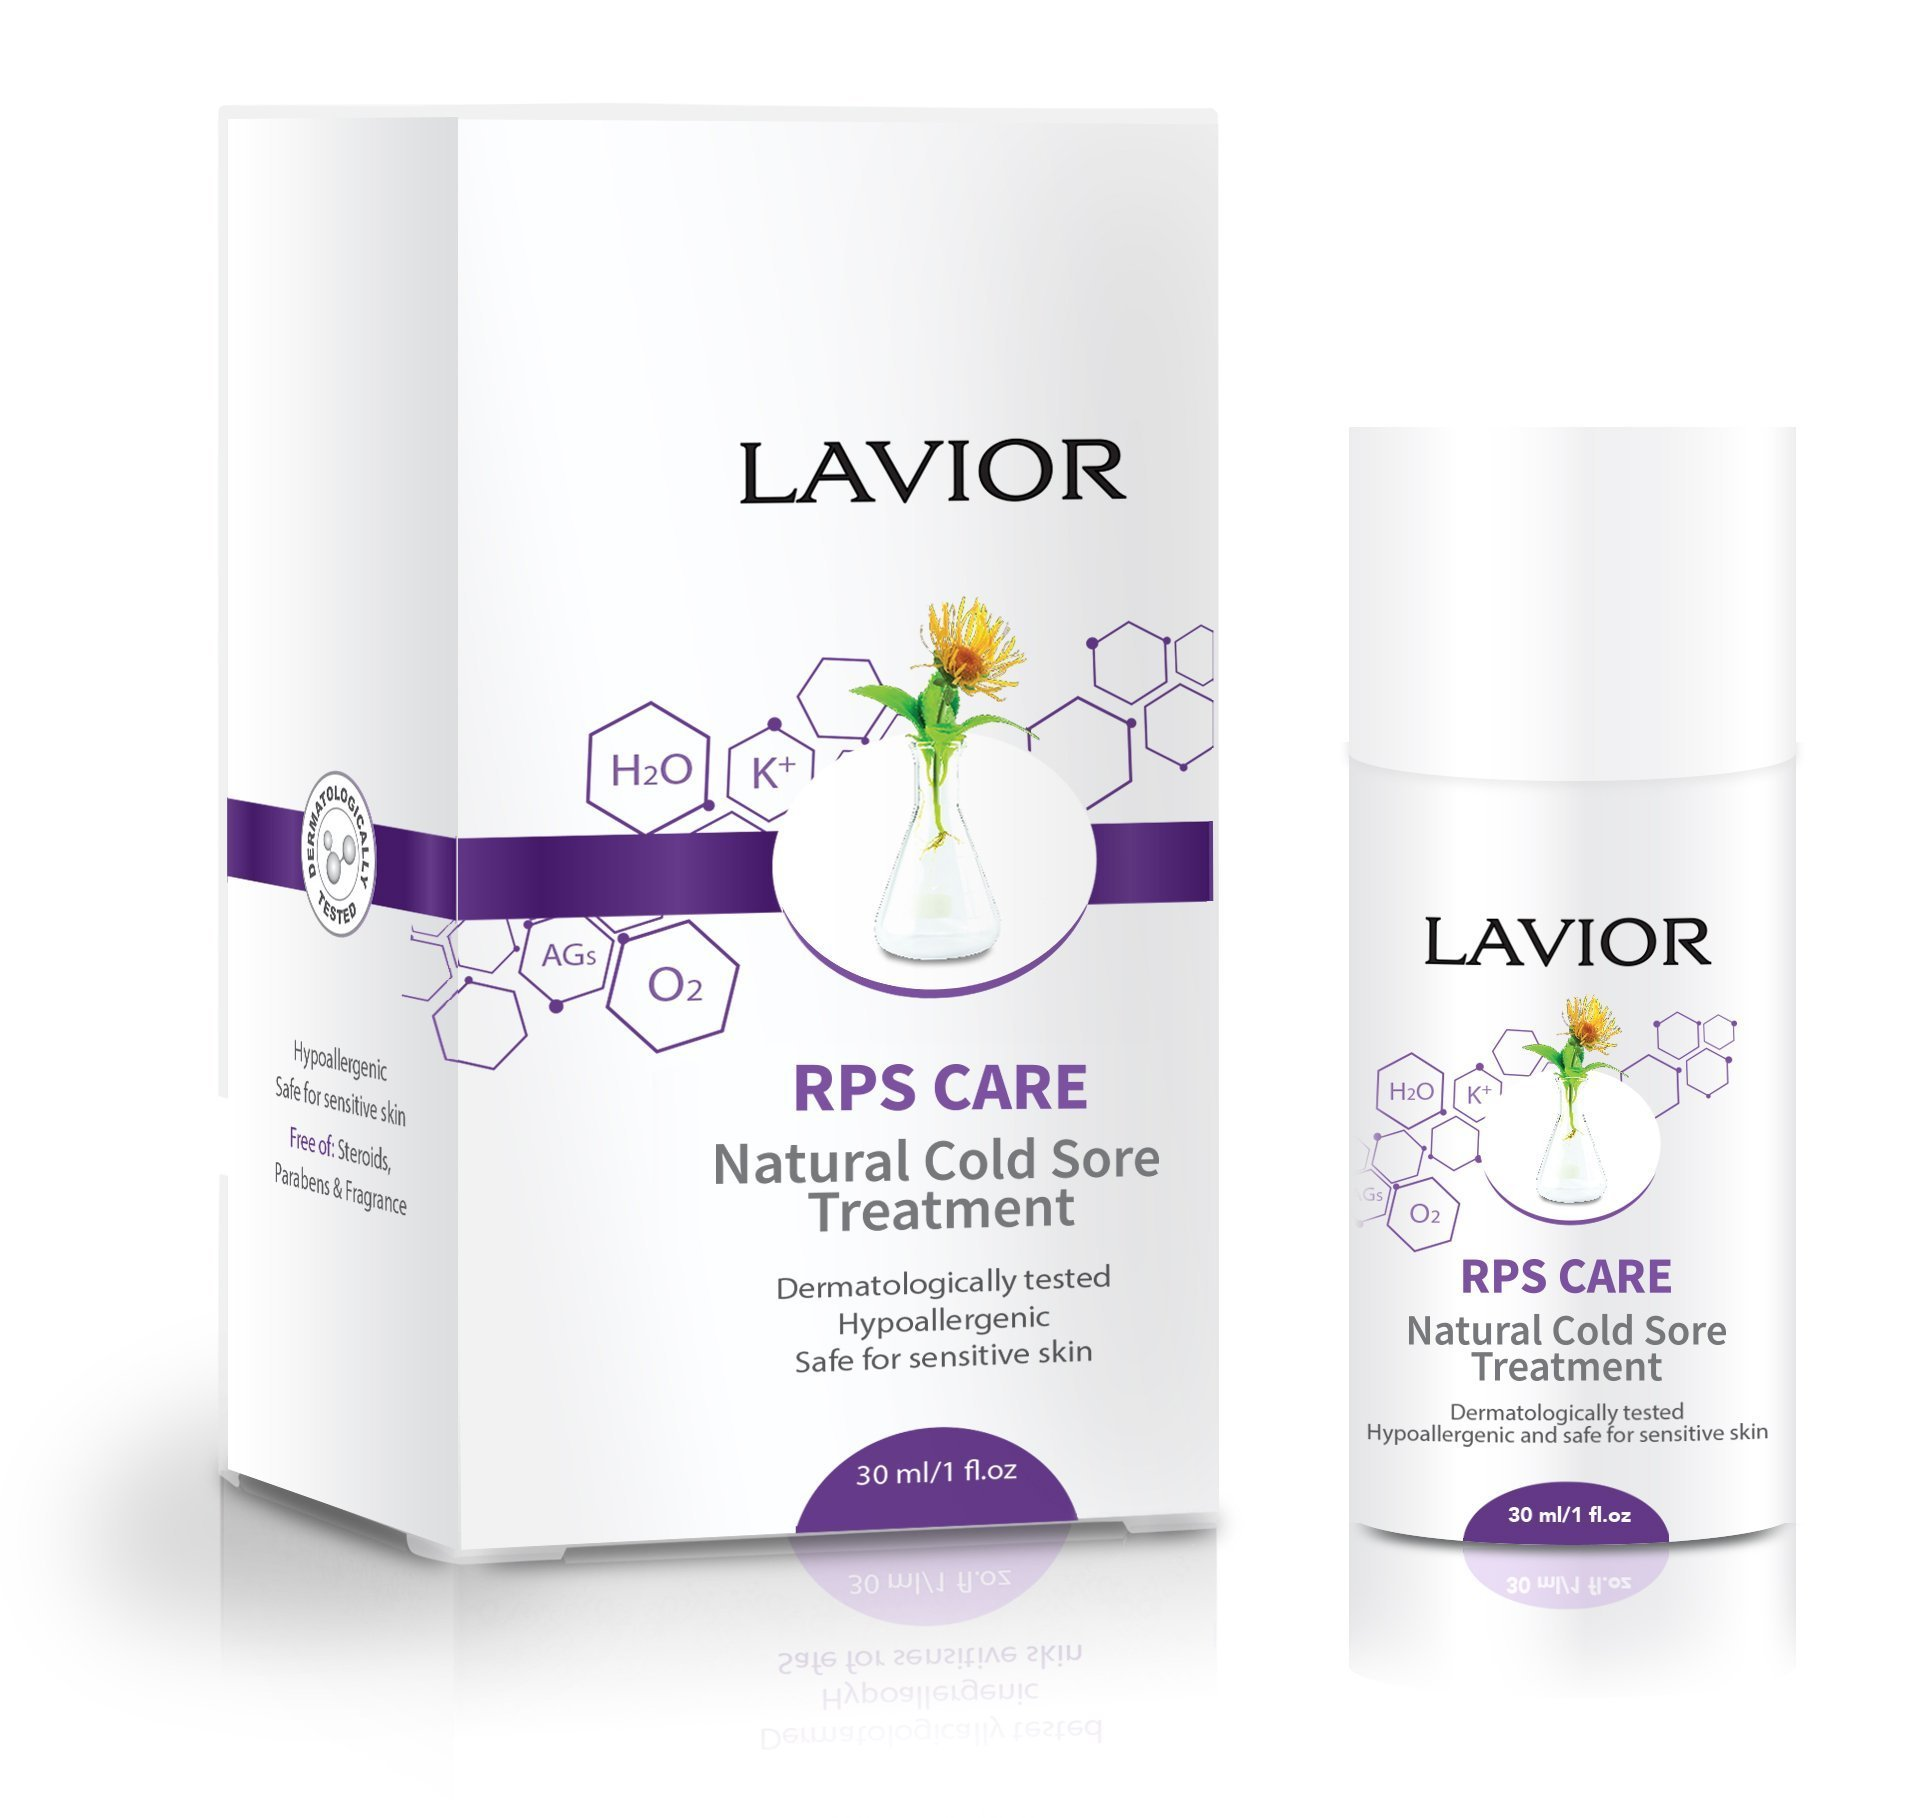 LAVIOR RPS Care Natural Herpes, Cold Sore & Fever Blister Treatment 1 oz - Antiviral - Clinically Proven & Dr. Recommended